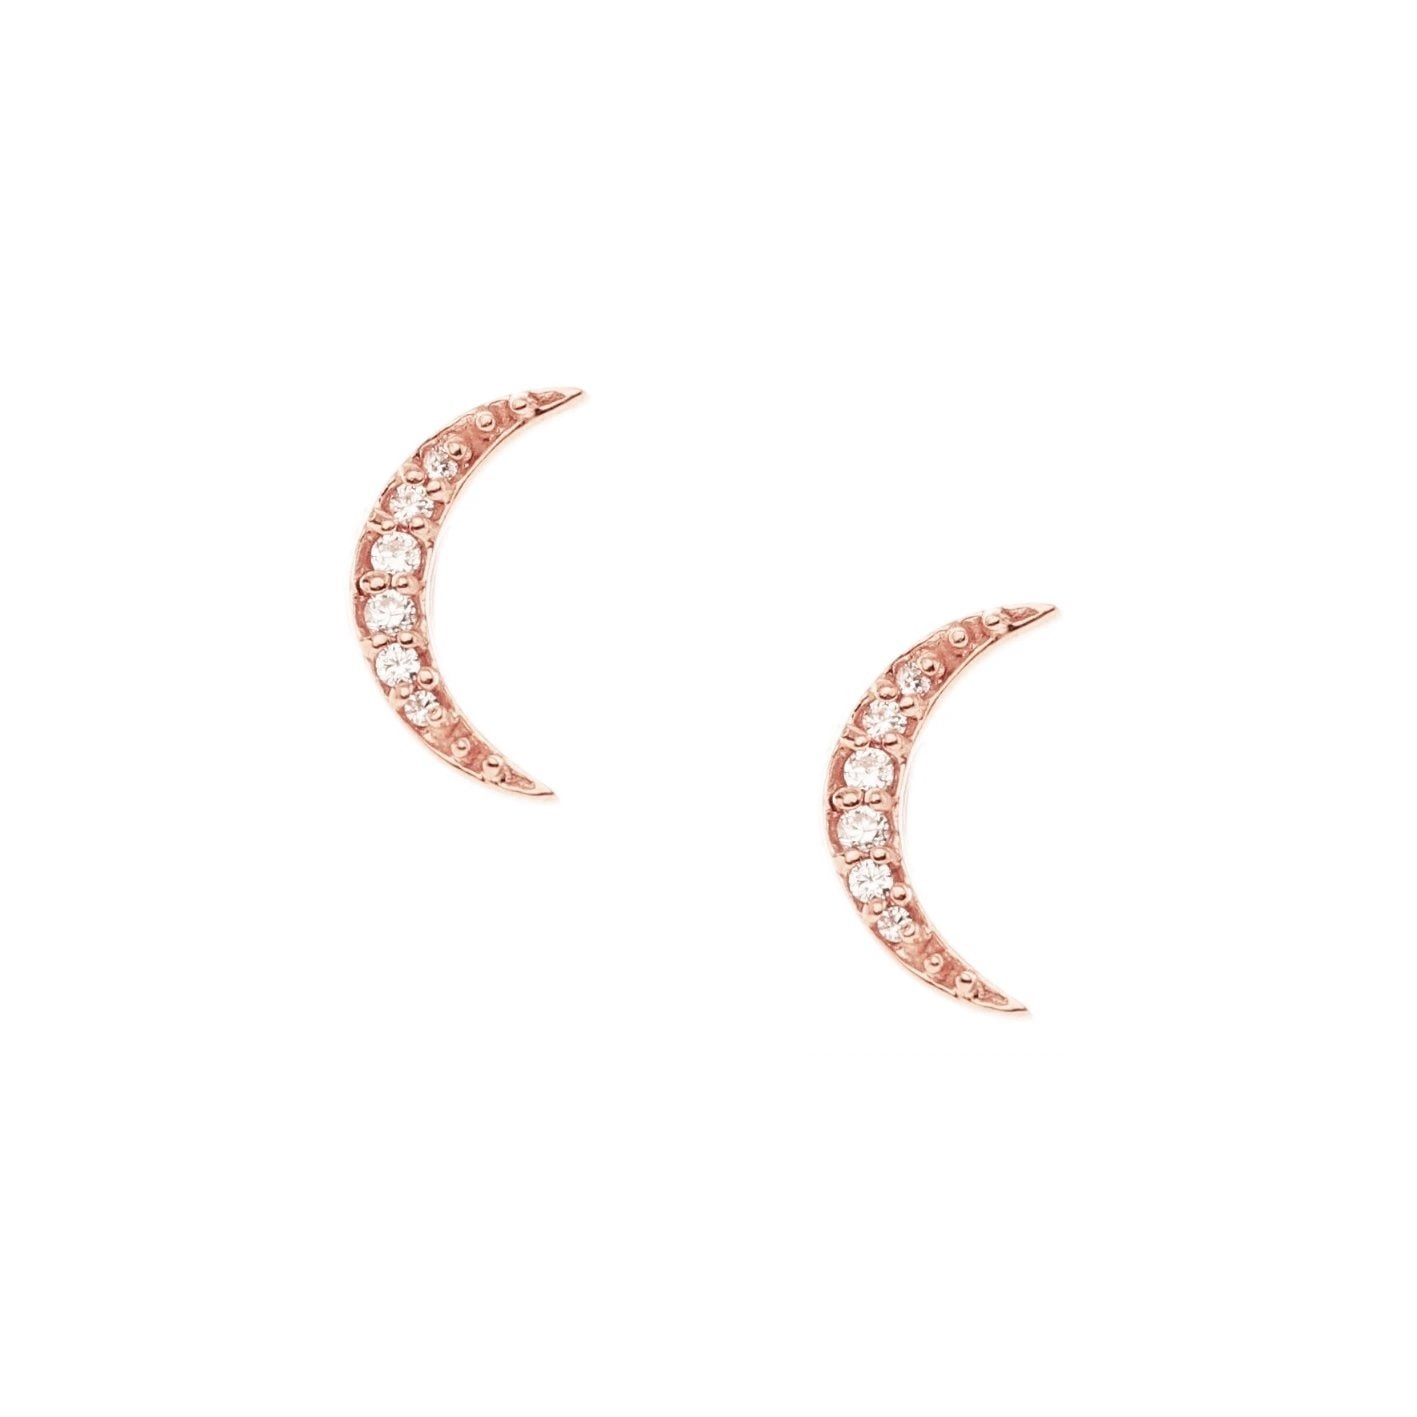 MINI DREAM LUNA STUDS - CUBIC ZIRCONIA & ROSE GOLD - SO PRETTY CARA COTTER